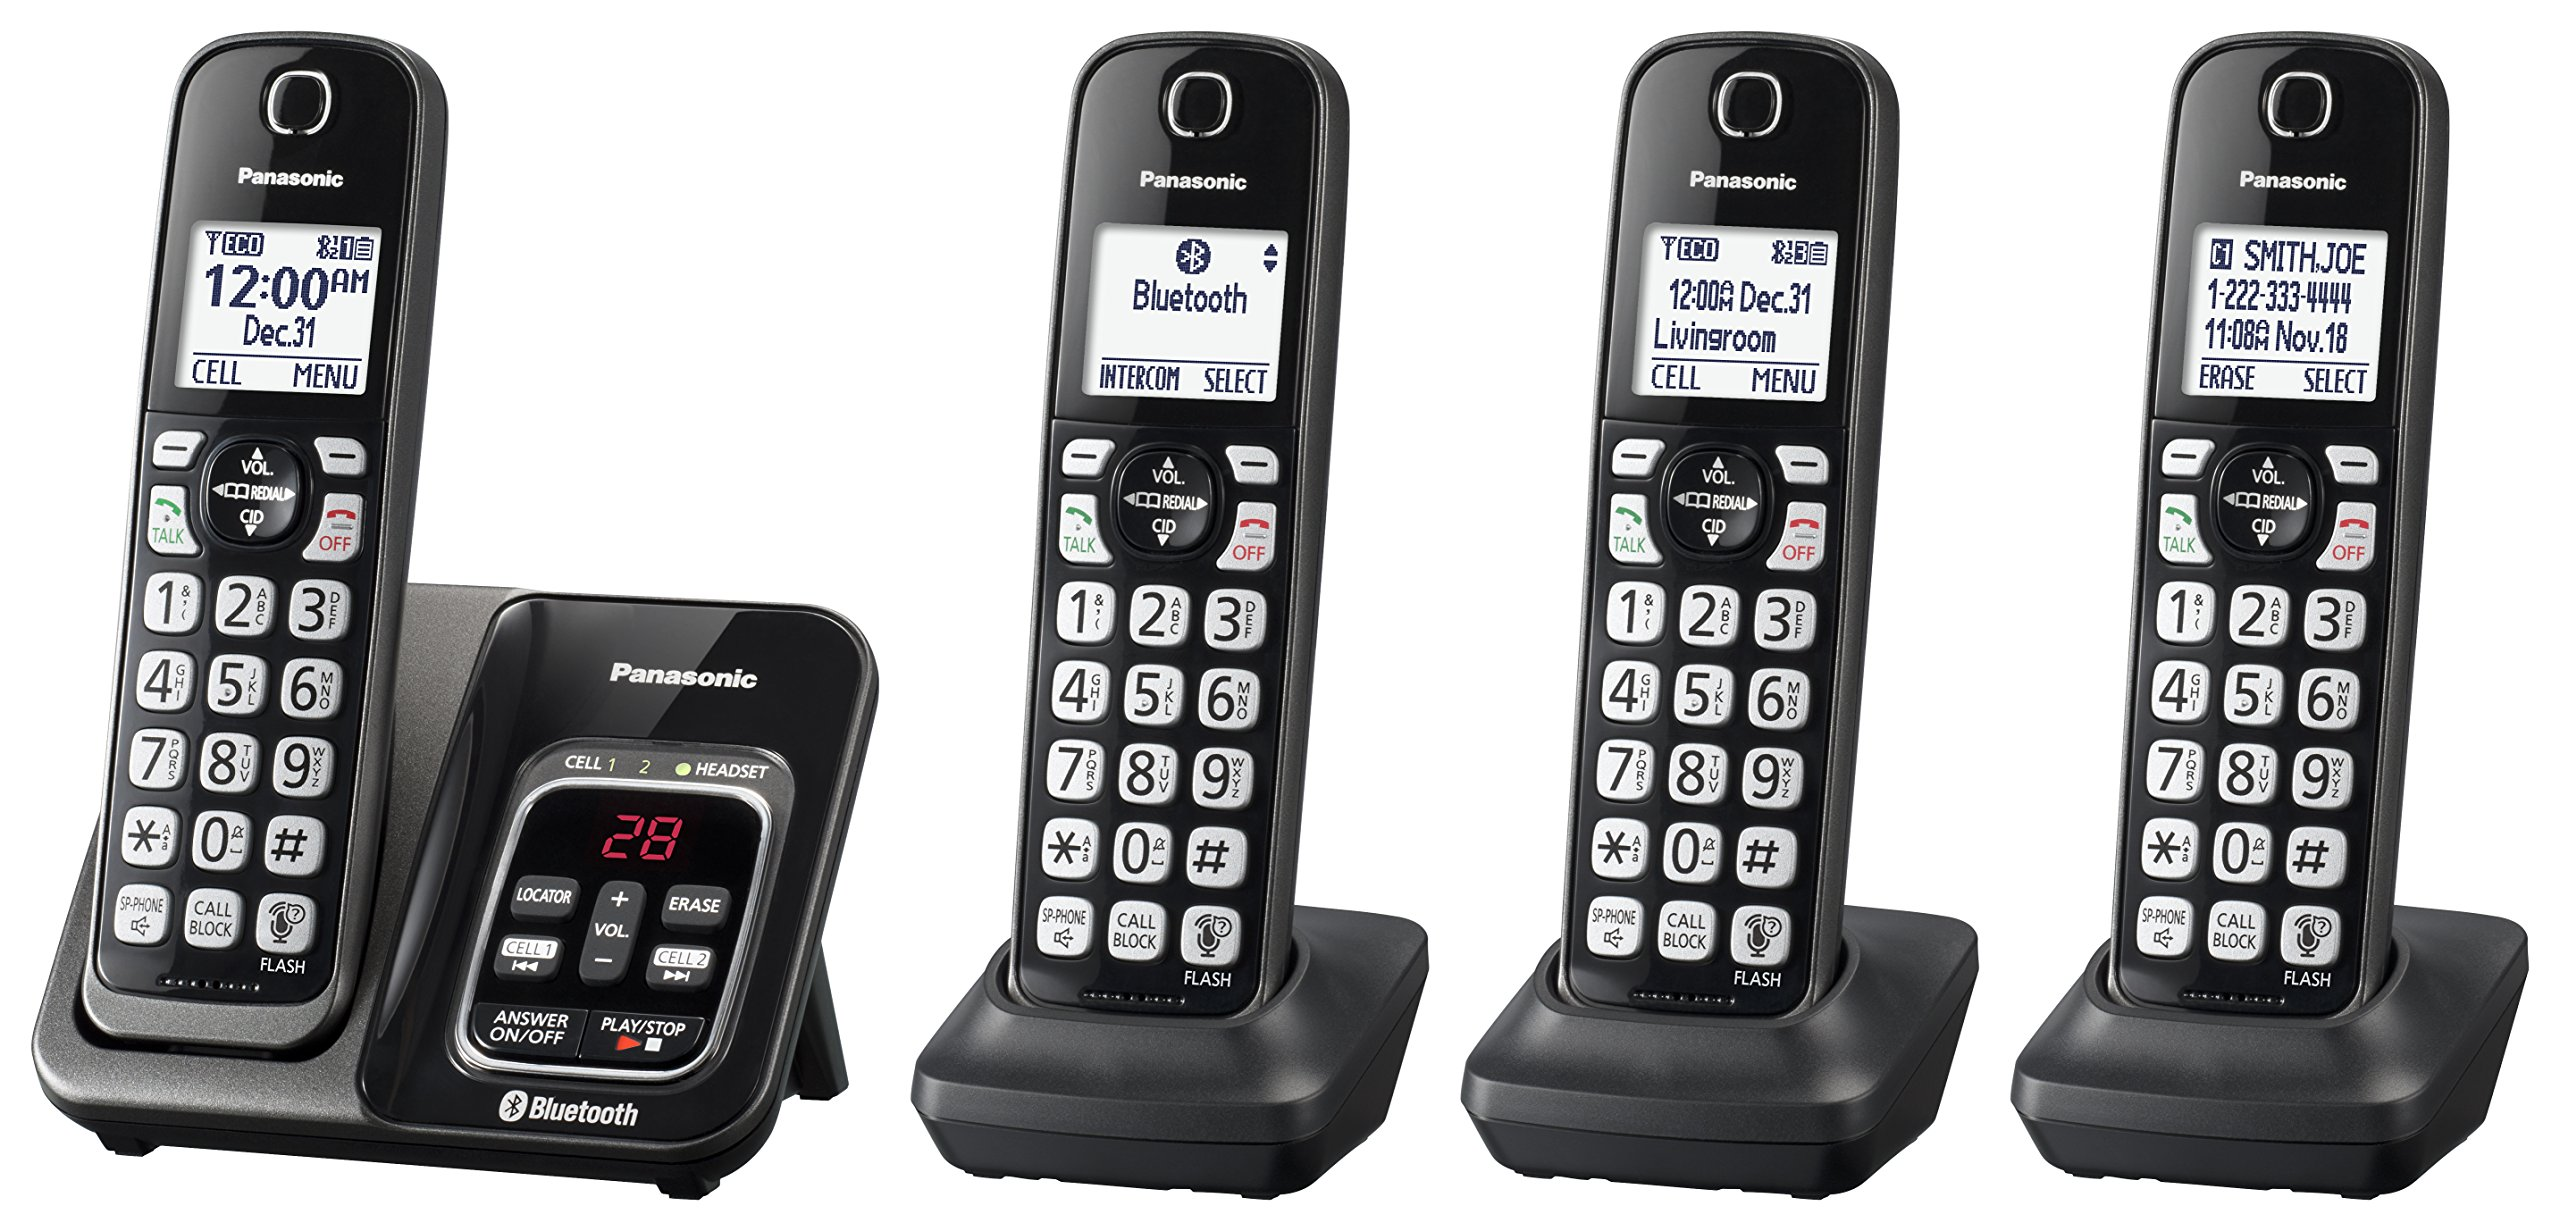 Panasonic KX-TGD564M Link2Cell Bluetooth Cordless Phone with Voice Assist and Answering Machine - 4 Handsets